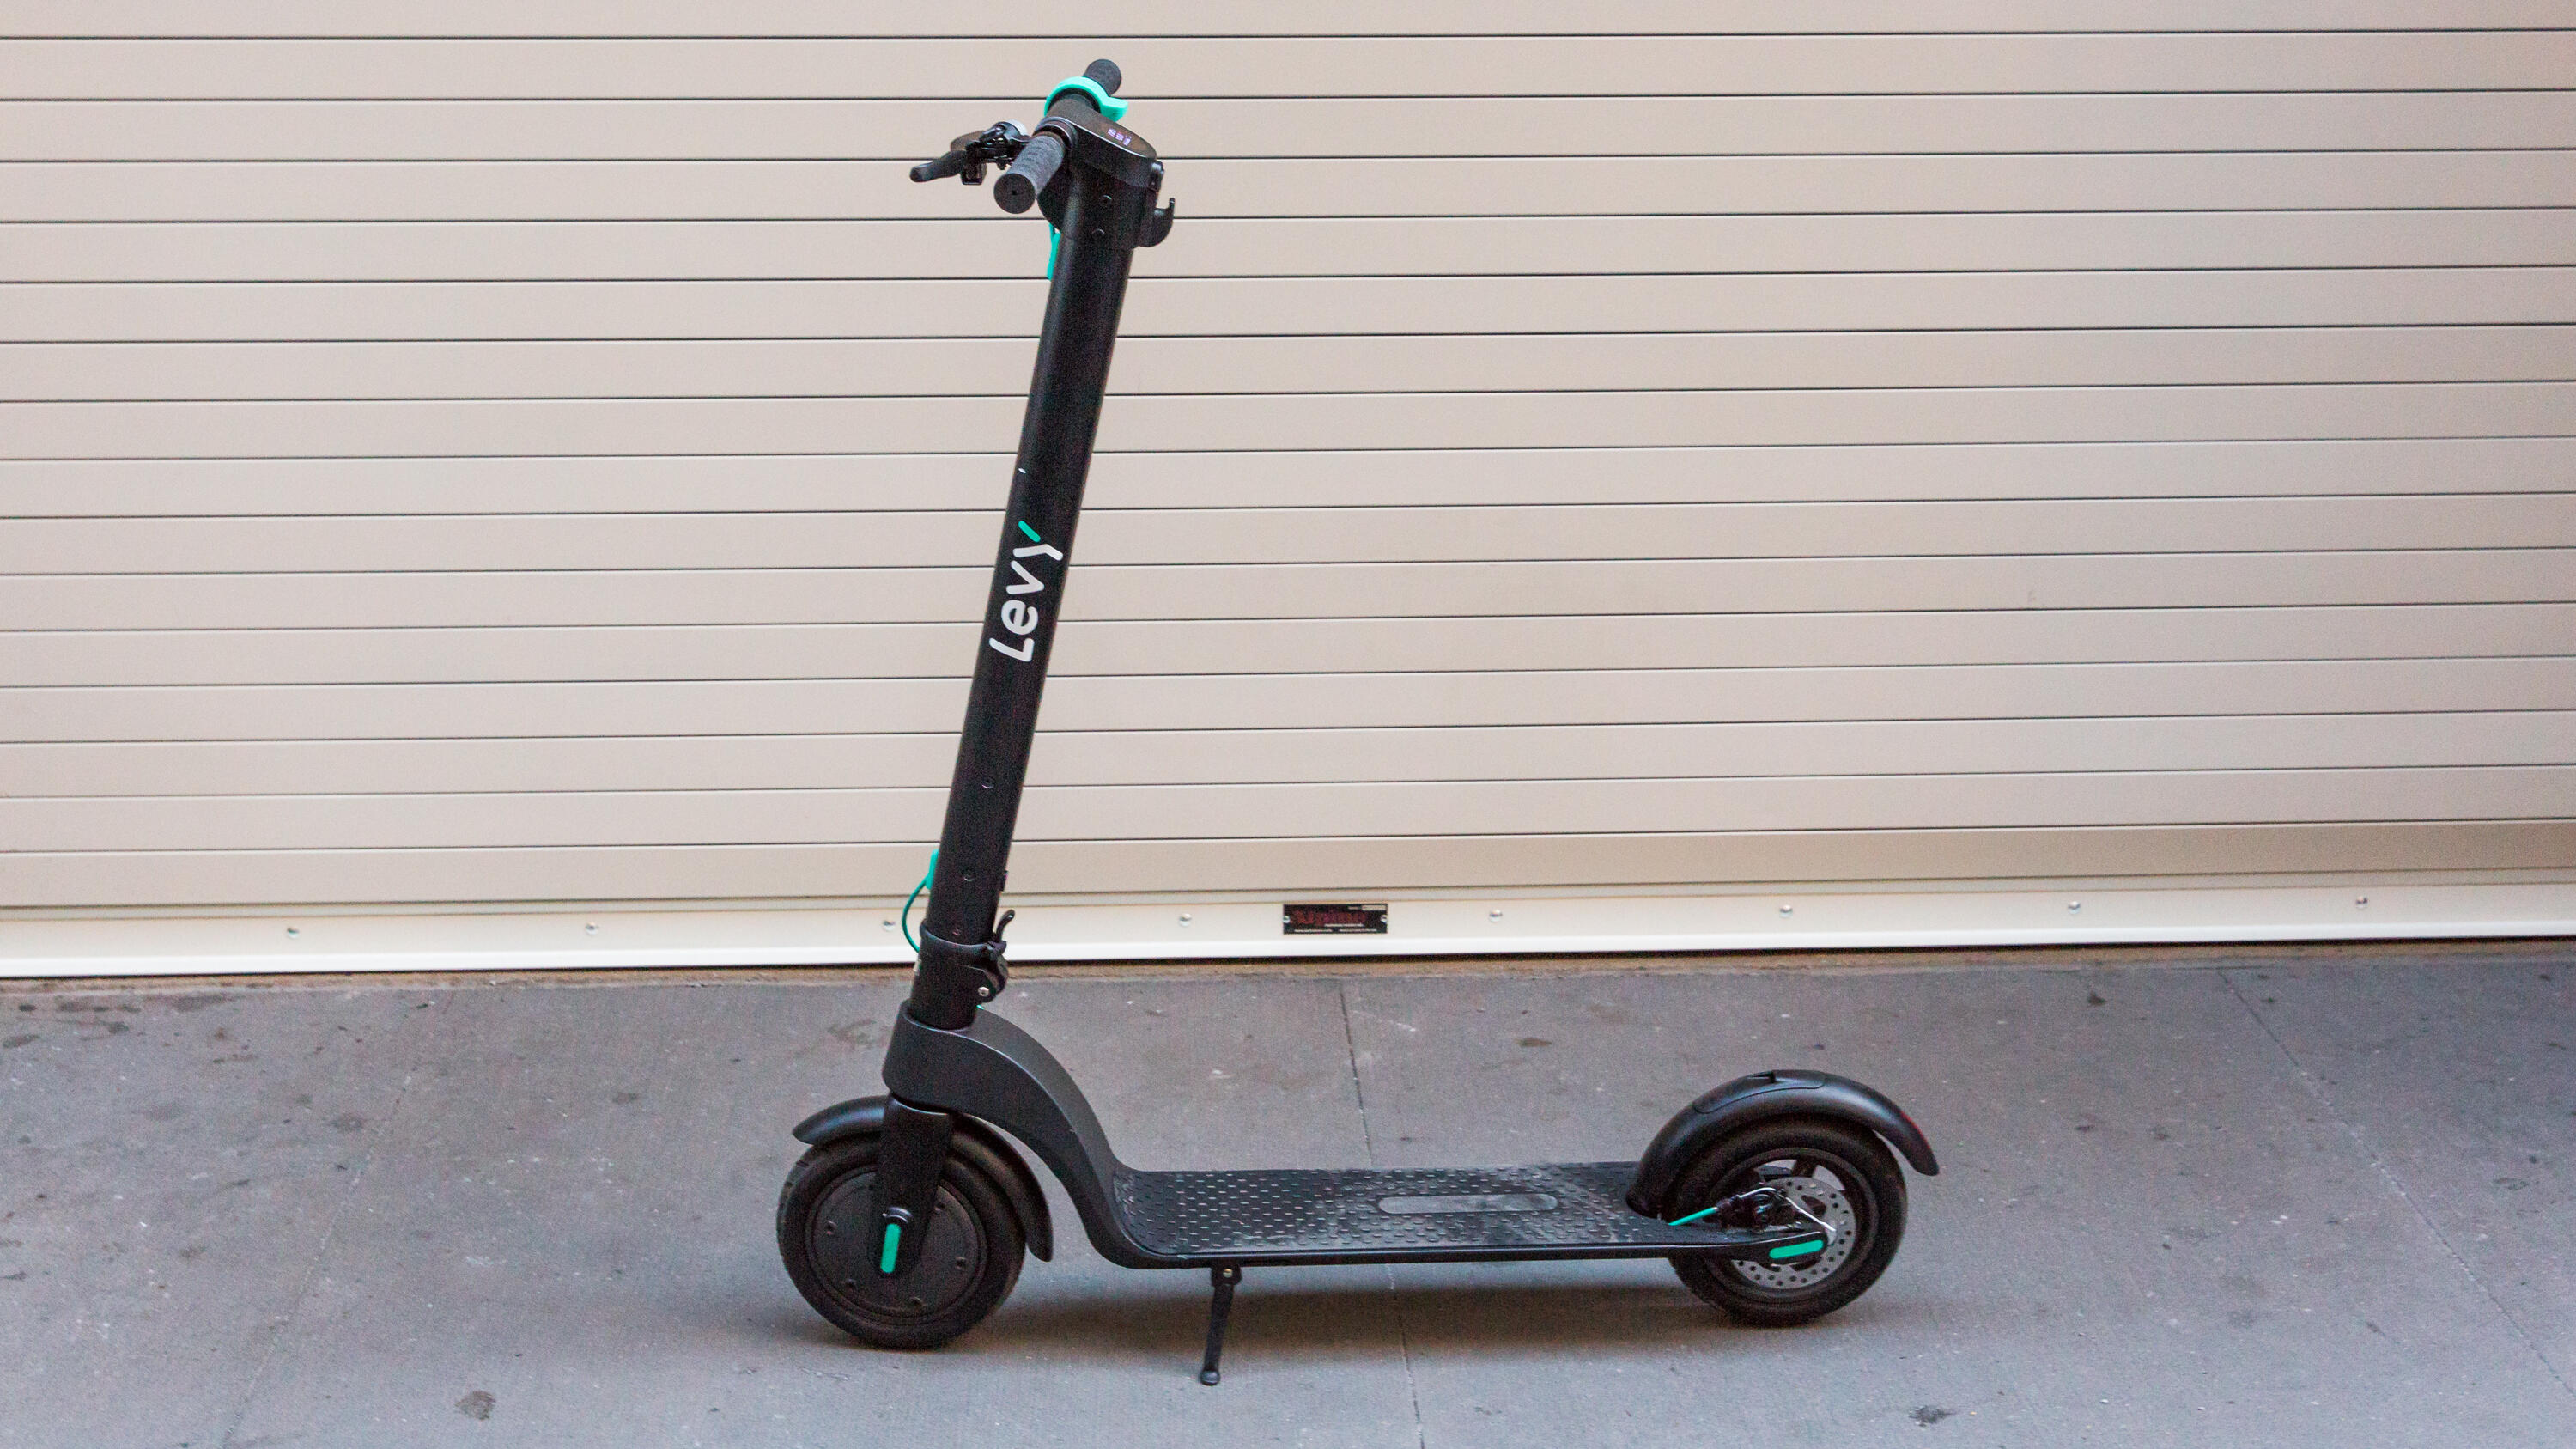 06 levy scooter | Best electric scooter for summer 2021 - Roadshow | The Paradise